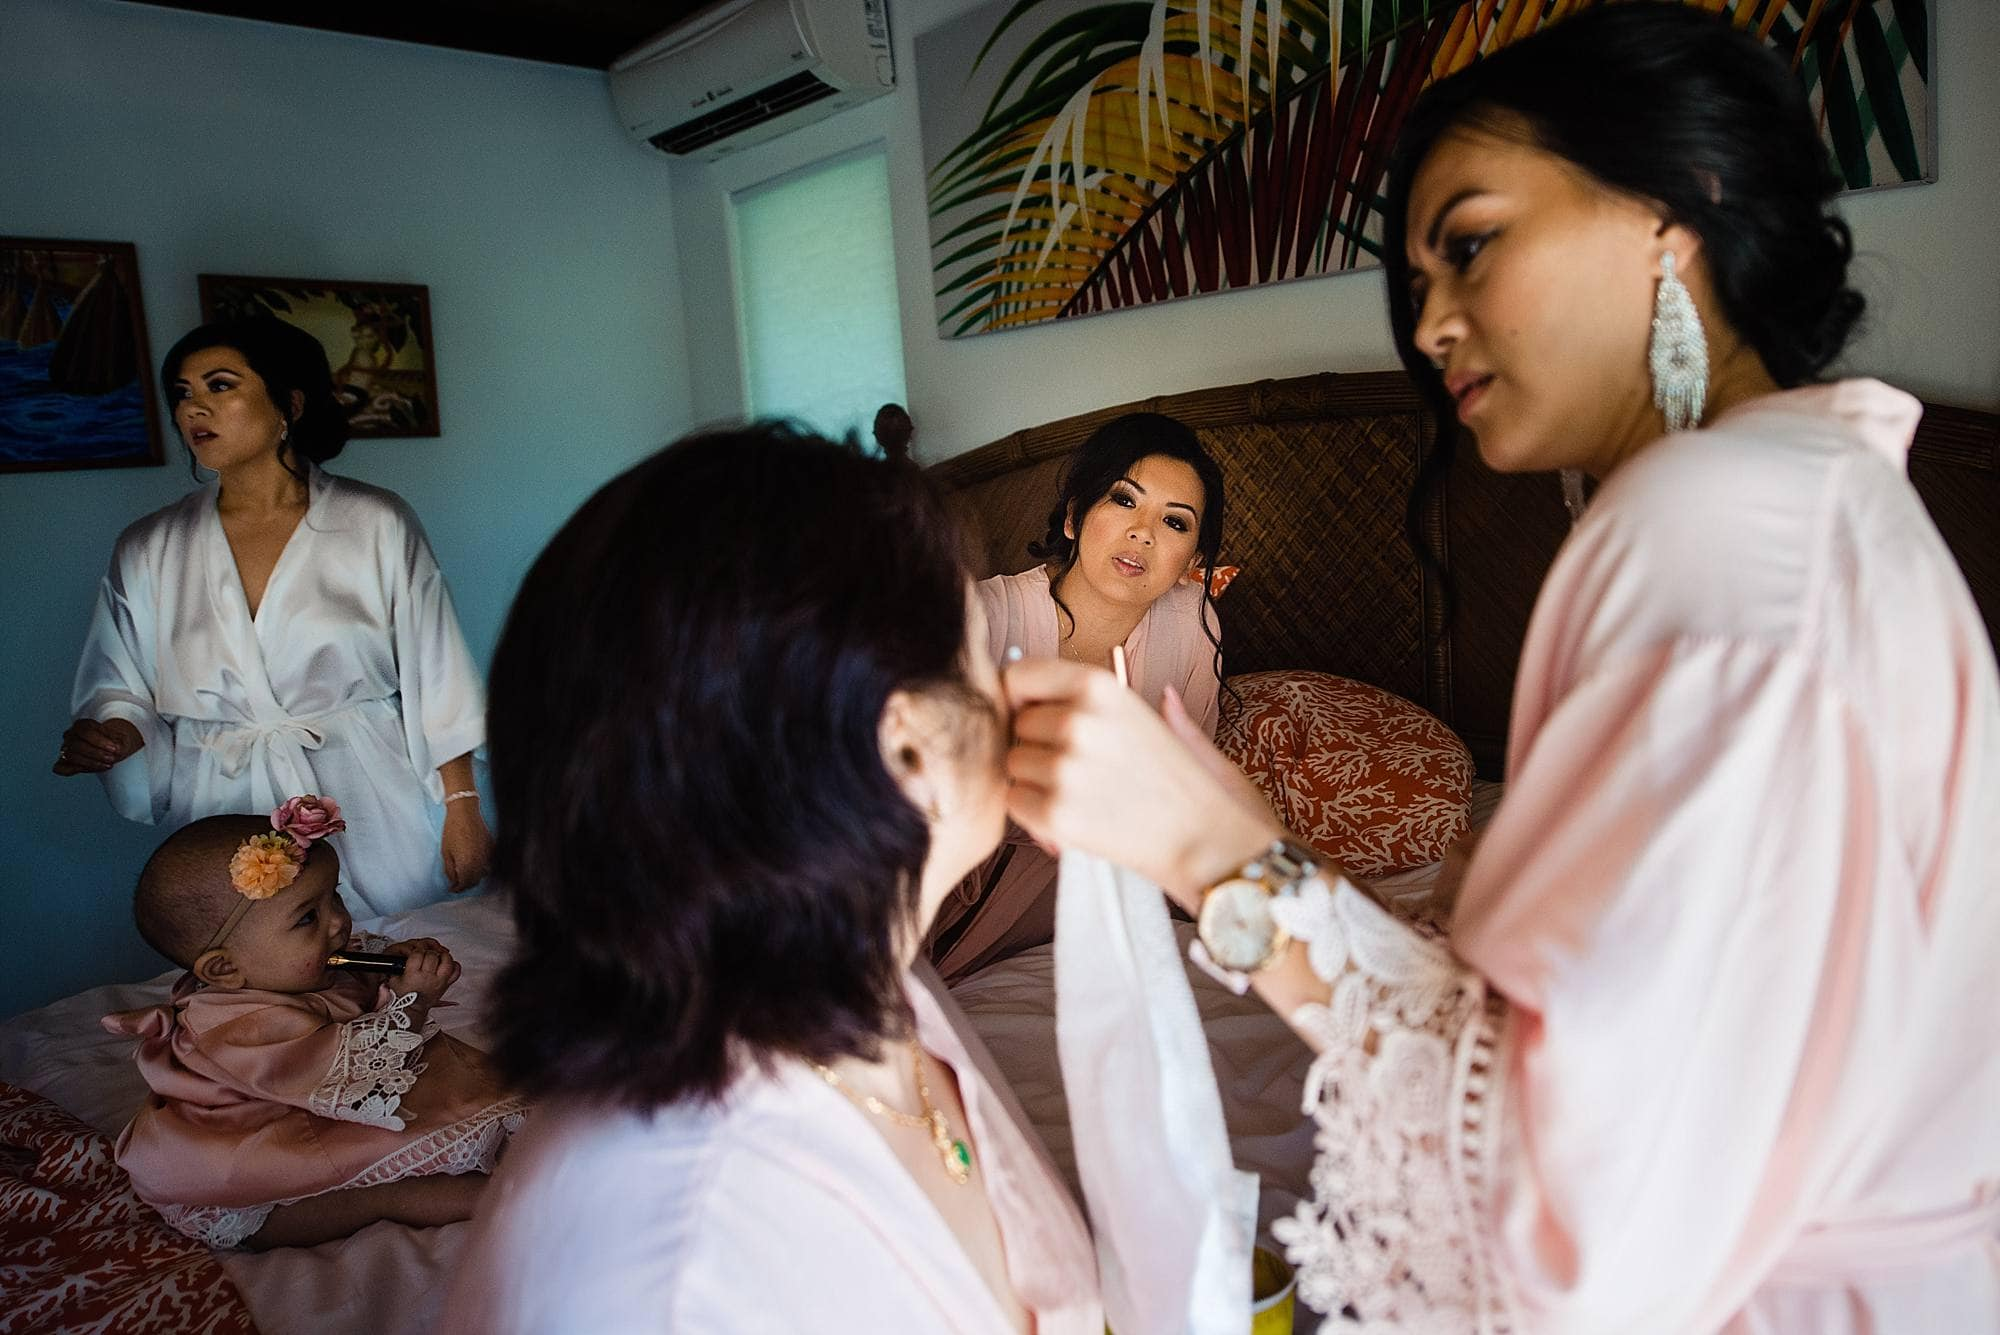 pink bridesmaids robes for getting ready